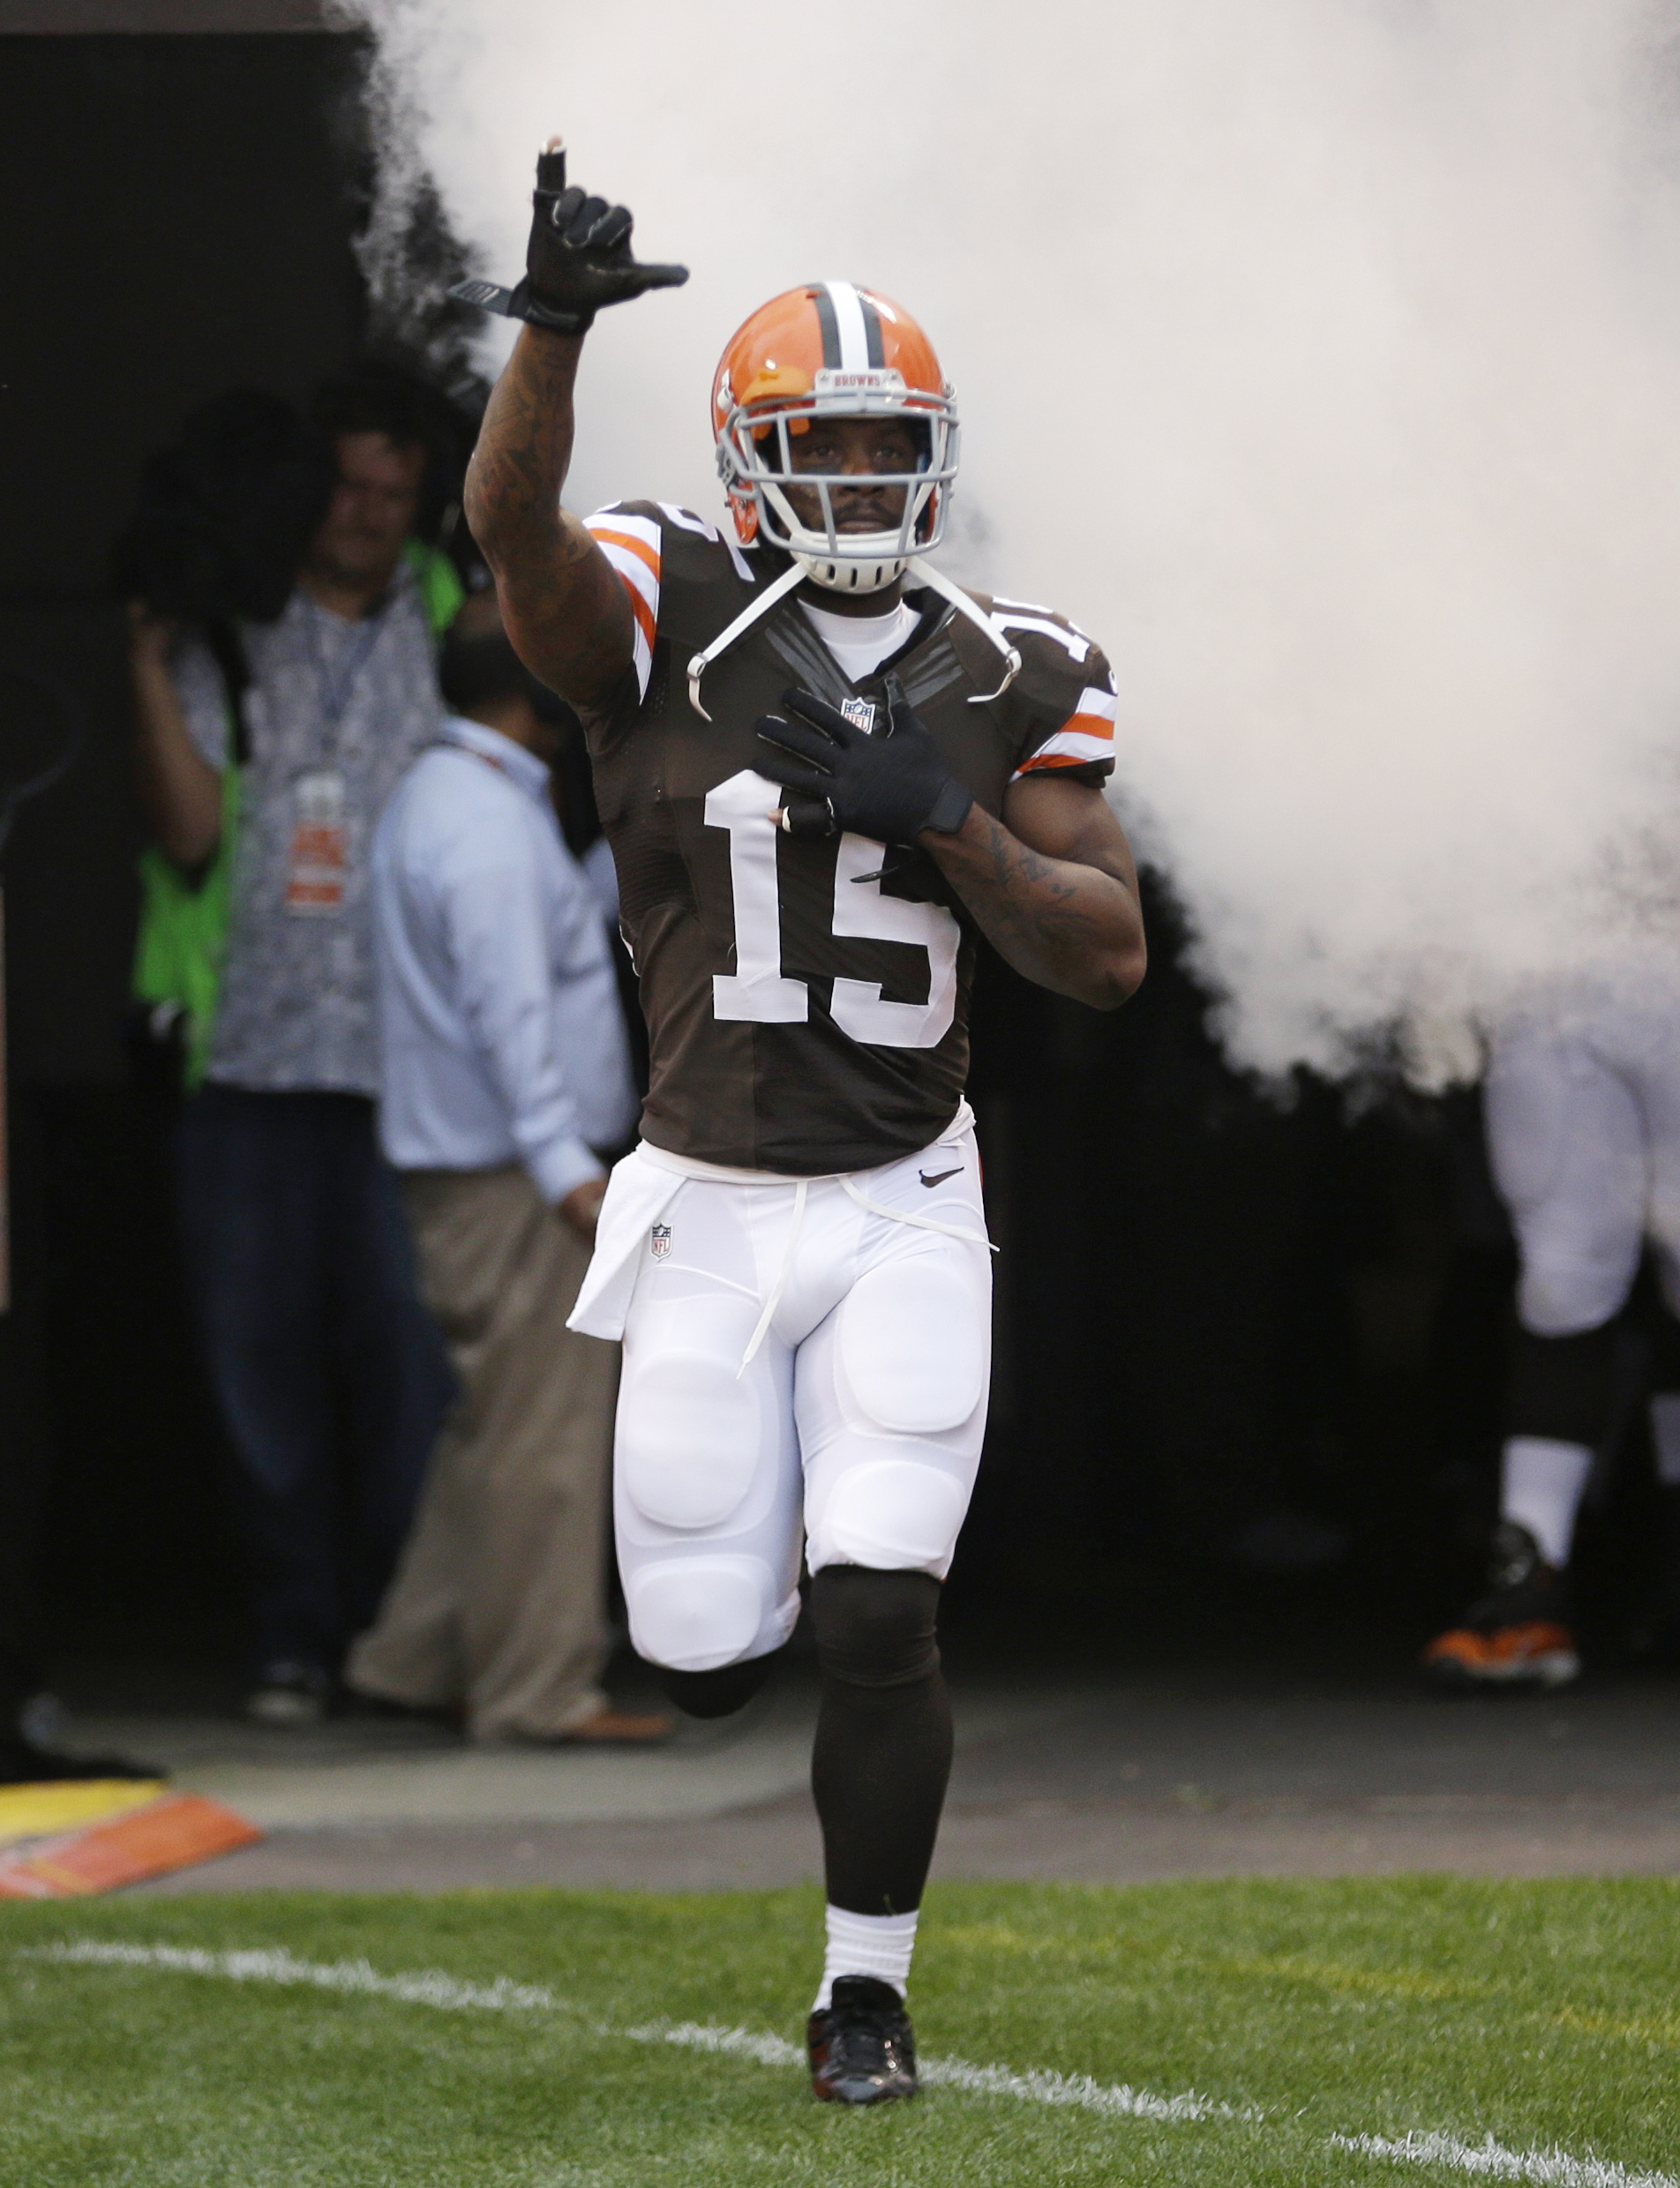 Cleveland Browns wide receiver Davone Bess is introduced before an NFL football game between the Detroit Lions and the Browns Sunday, Oct. 13, 2013, in Cleveland. (AP Photo/Tony Dejak)